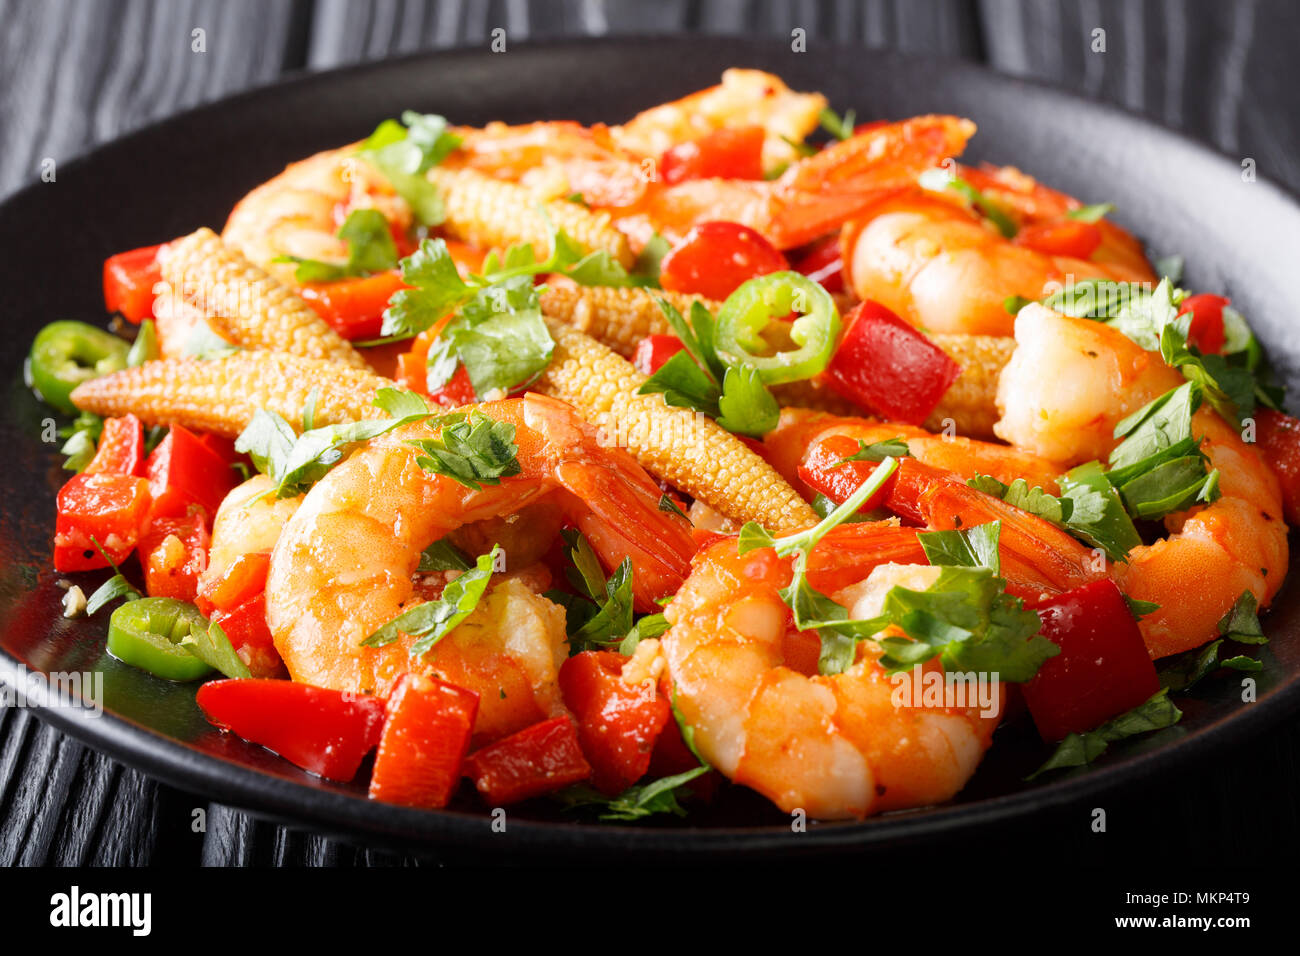 Mexican delicious prawns with pepper, garlic, corn cob and herbs close-up on a plate. horizontal - Stock Image